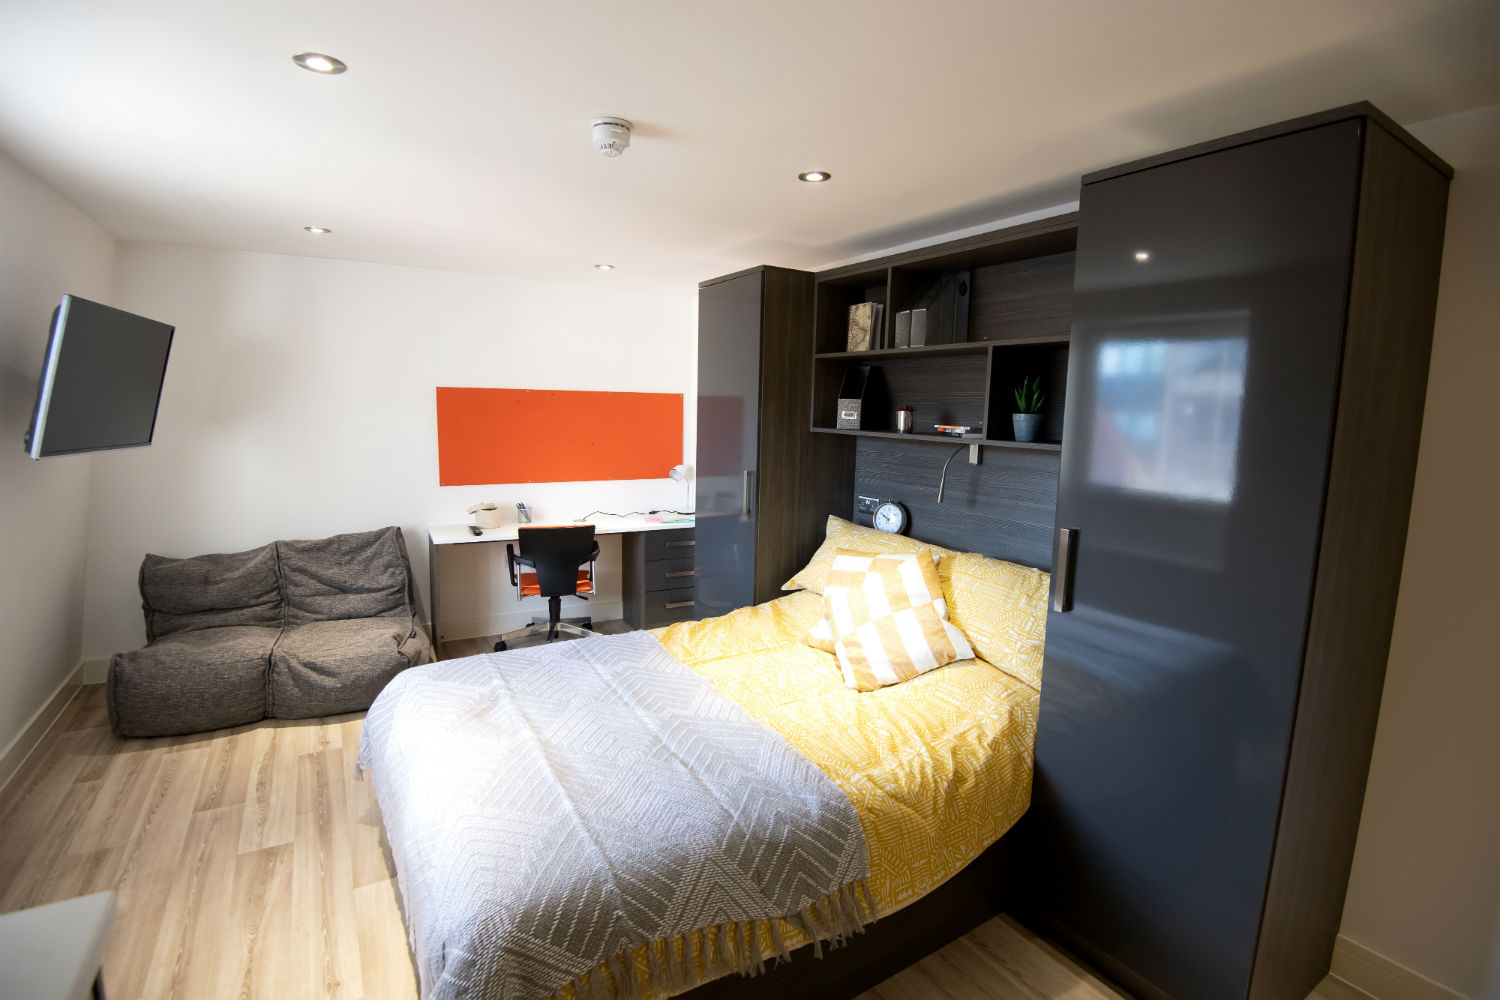 Photo of a room at Fairchild House student accommodation Southampton